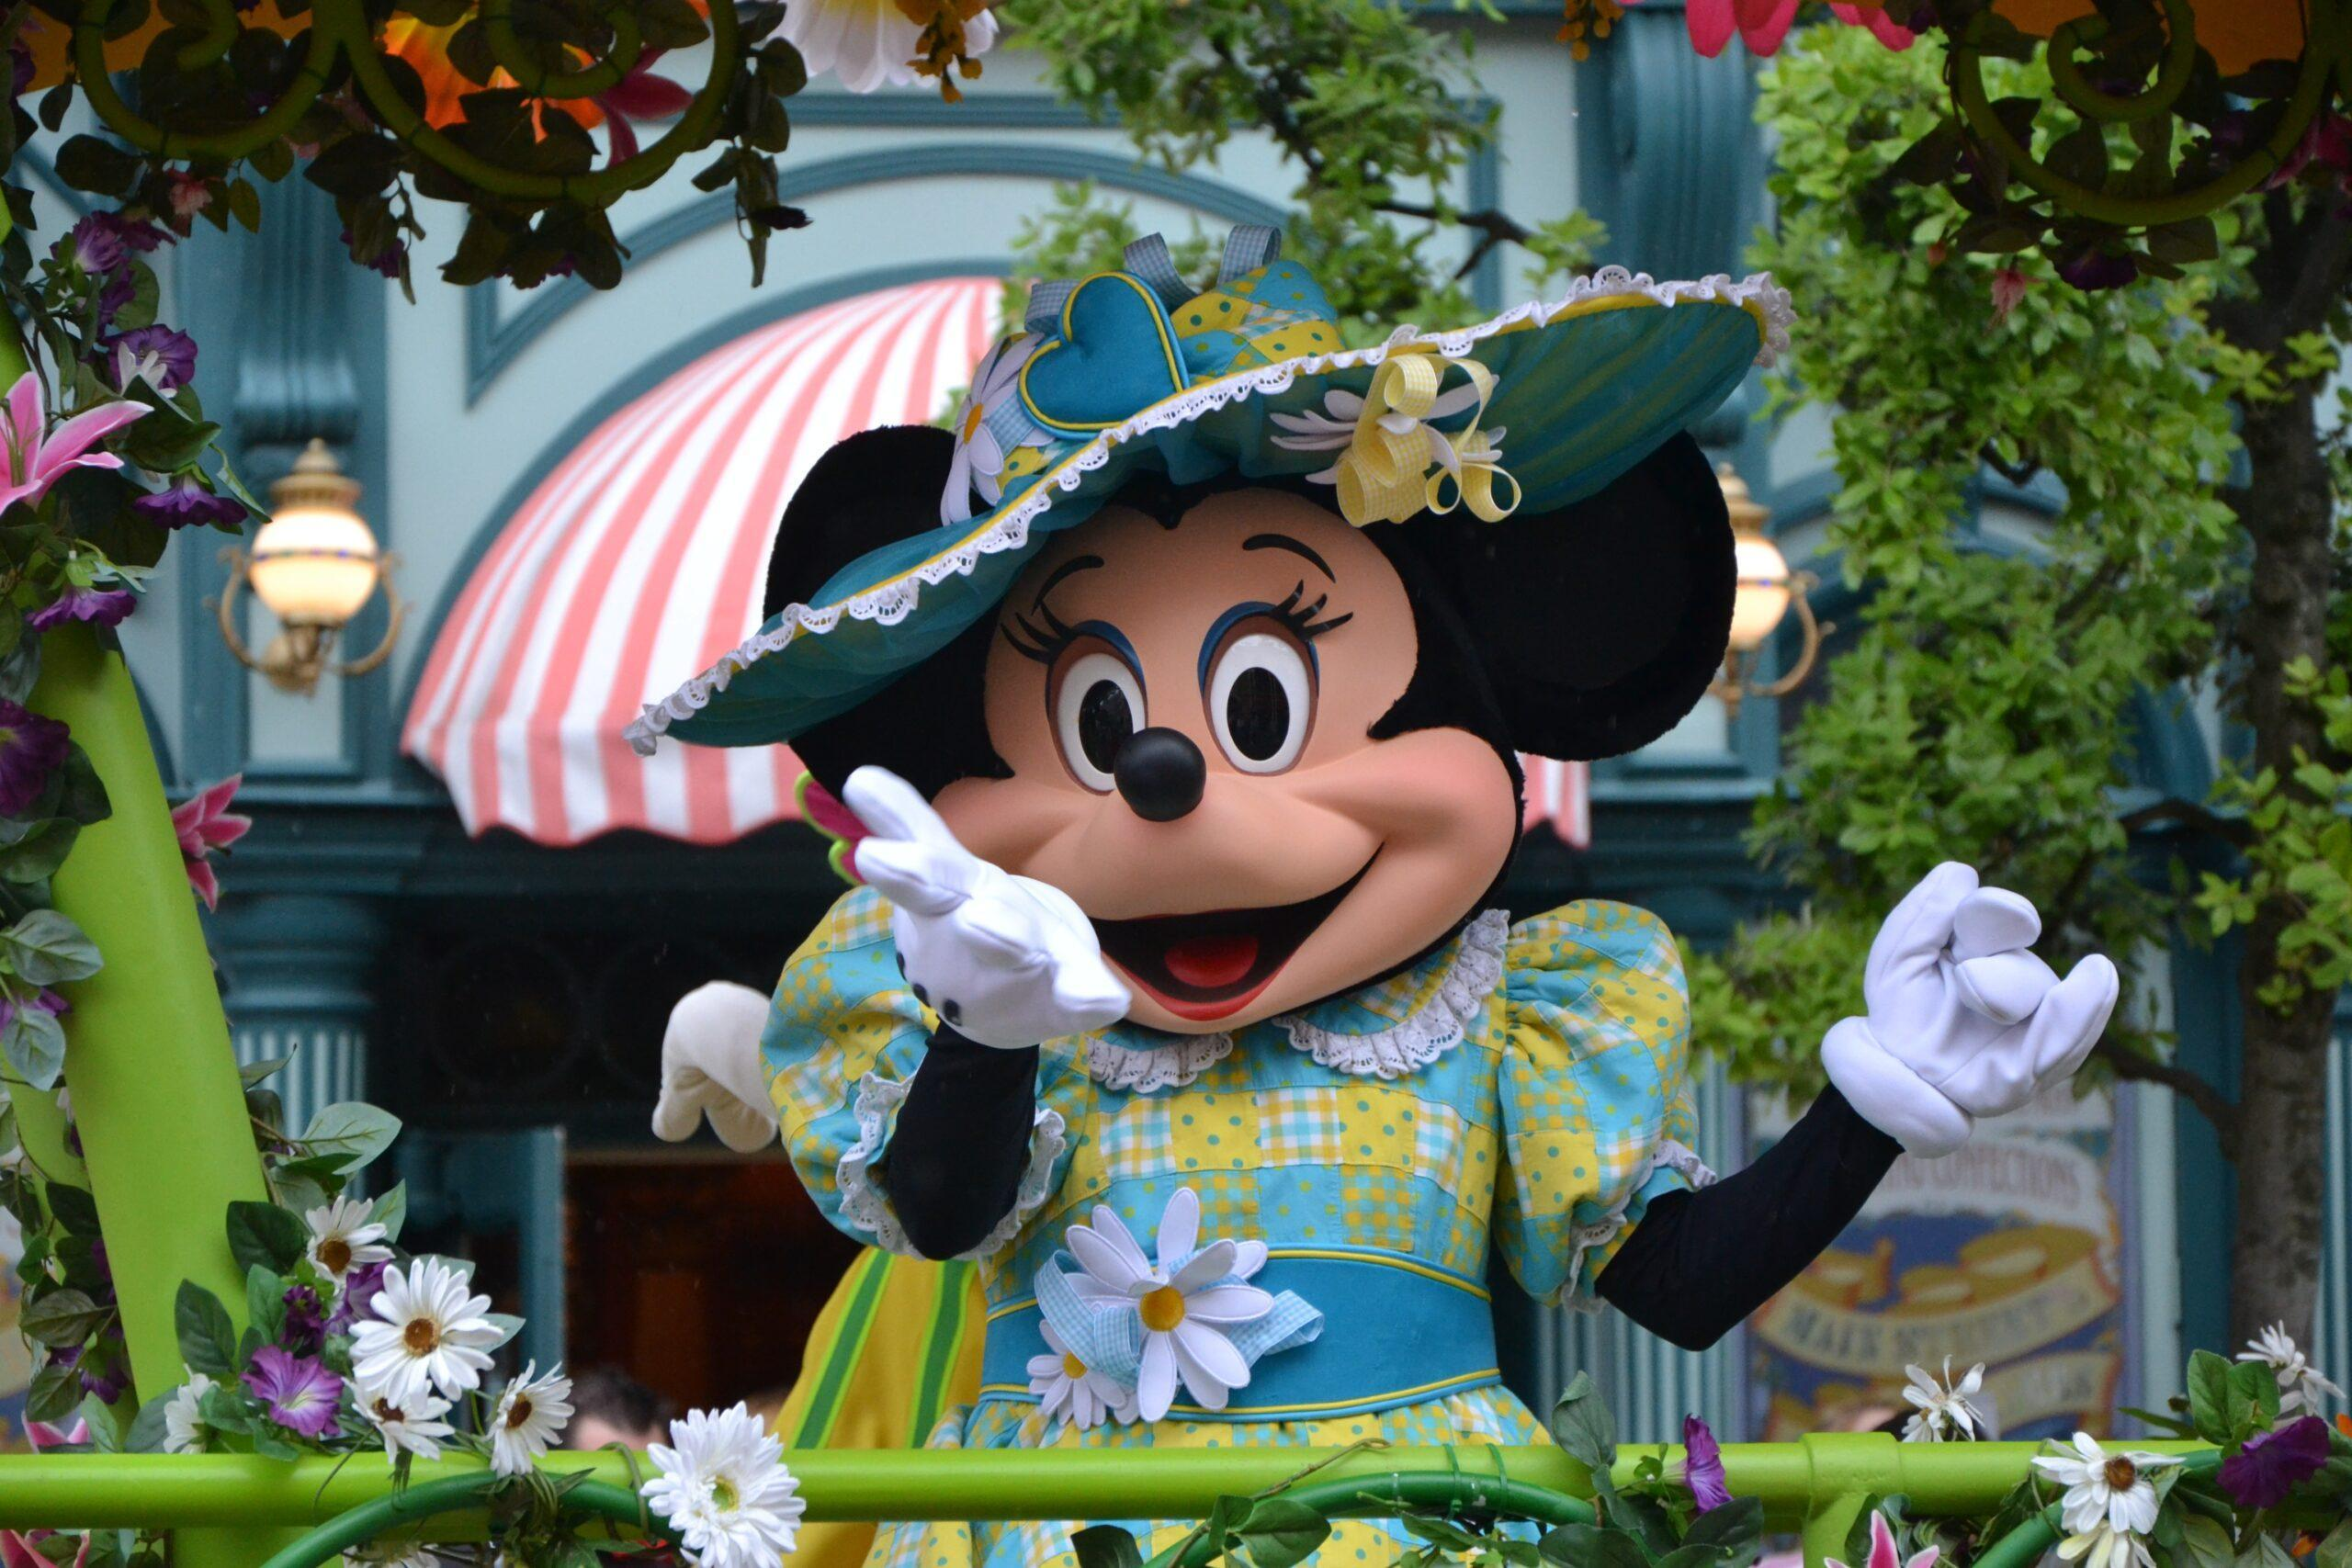 Fairytale Holidays by Travel Counsellors are rated an amazing 4.9 stars with Trustpilot and over 3300 reviews. Award winning UK Travel agent specialising in trips to Walt Disney World, Disneyland Paris and Universal Orlando